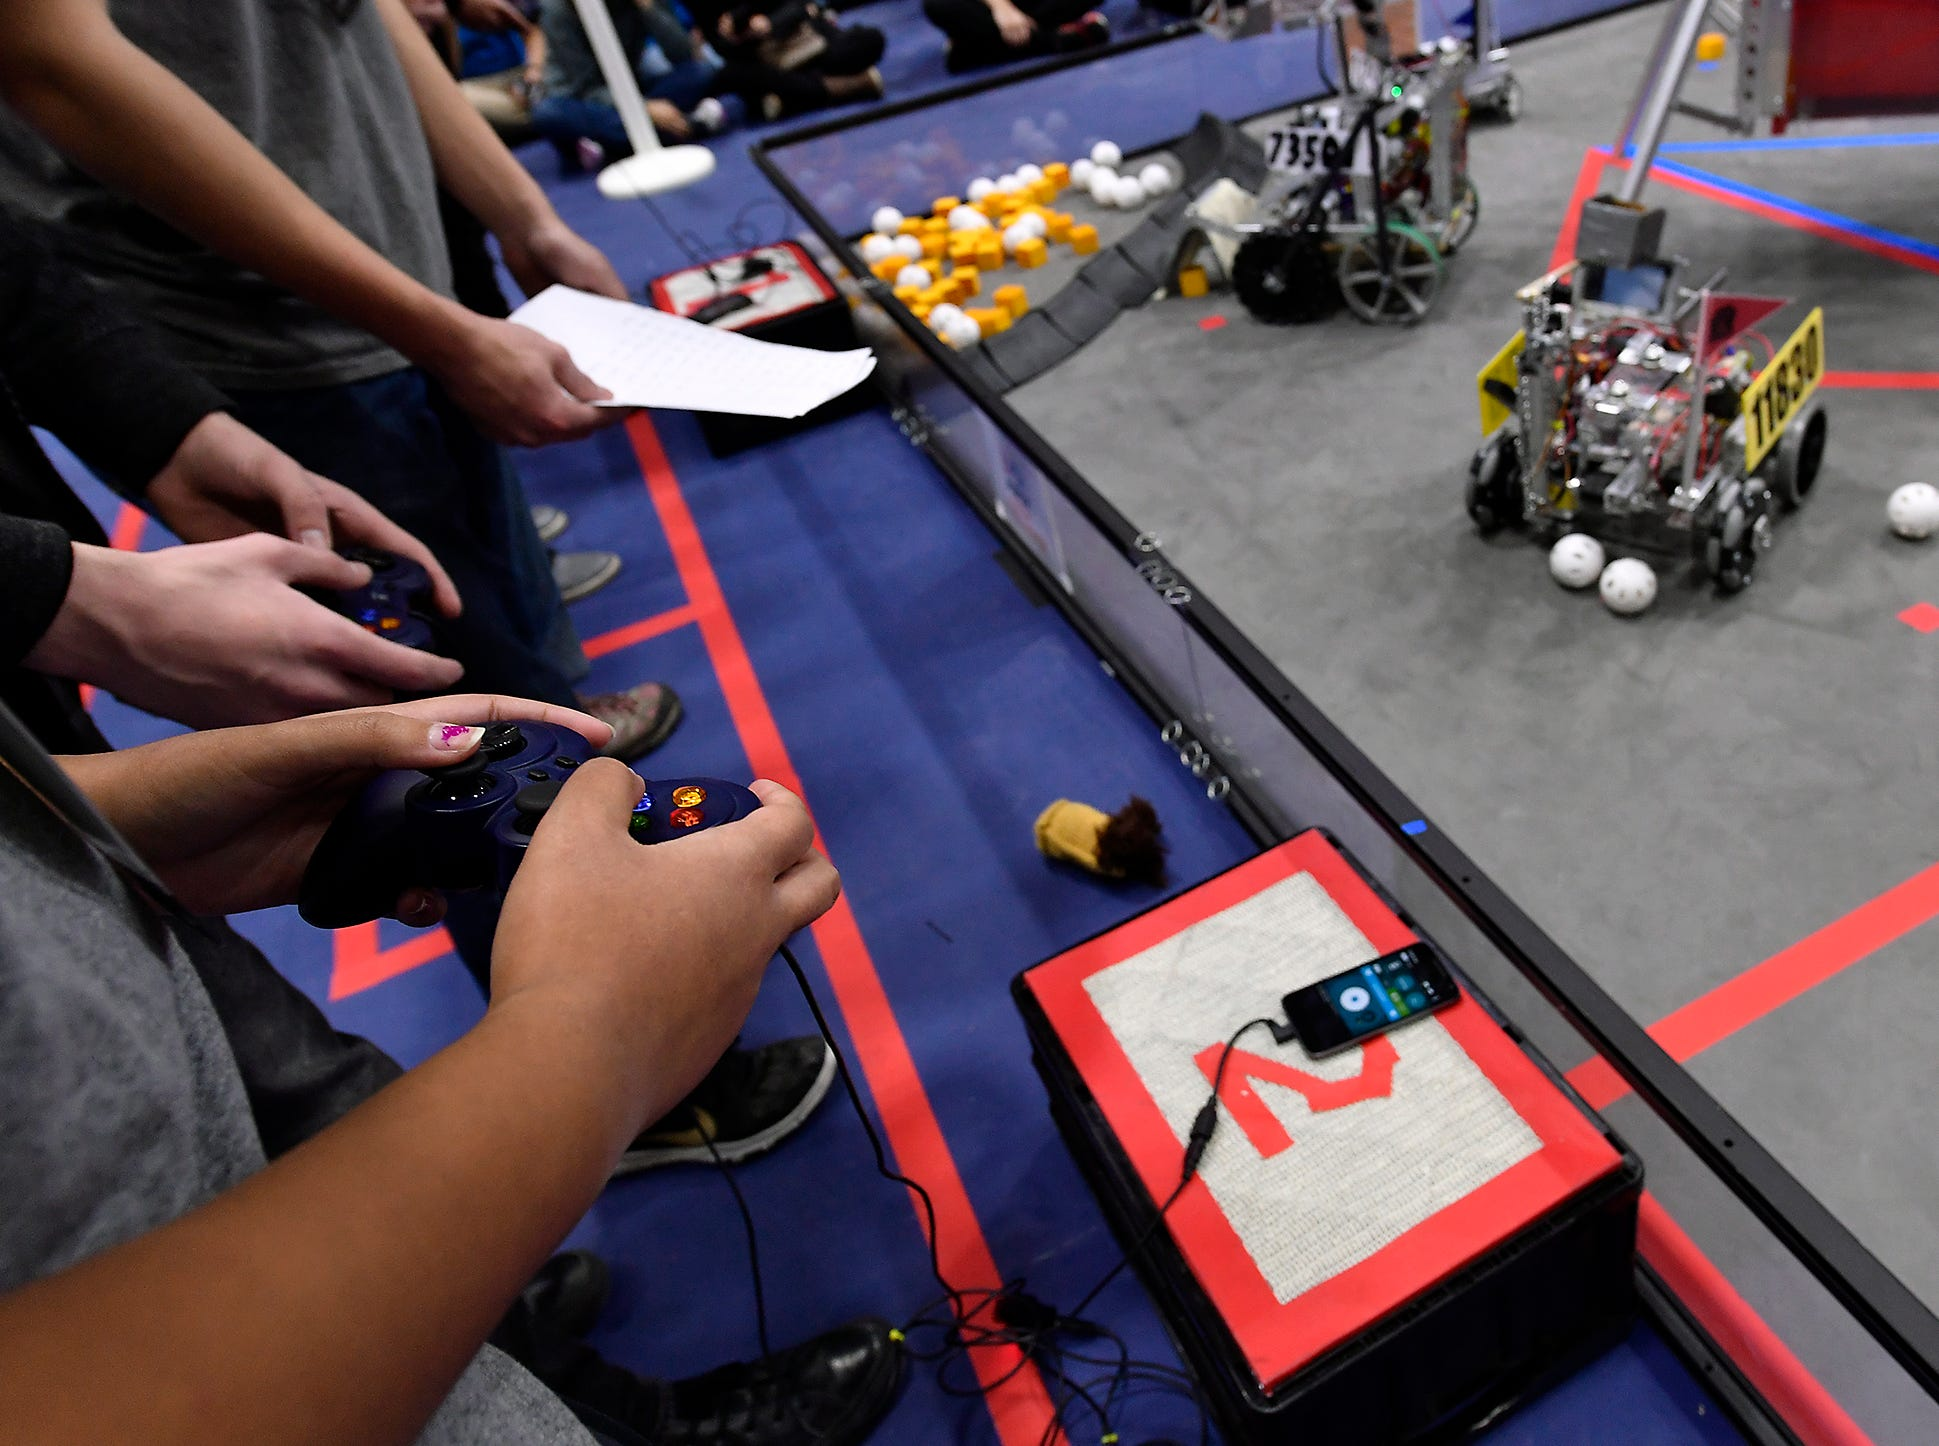 Competitors, including local teams from Red Lion and York, take part in the two-day Rover Ruckus robotics tournament at Penn State York, Sunday, February 3, 2019. John A. Pavoncello photo